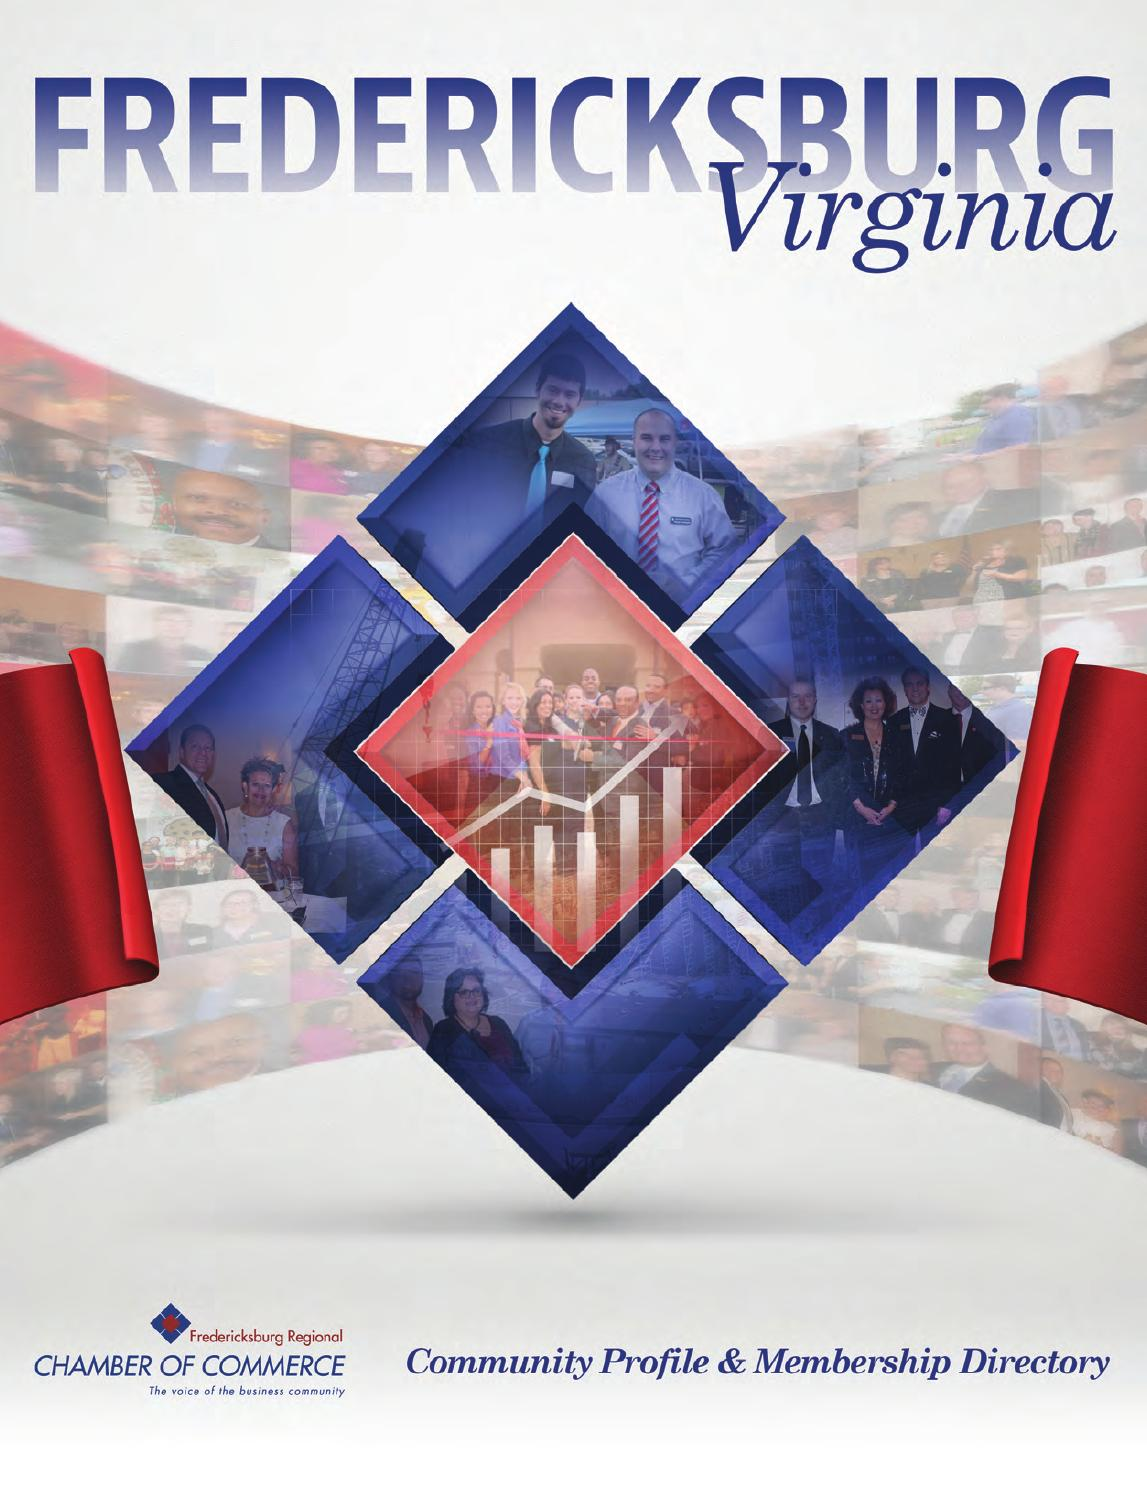 antelope valley ca community profile by townsquare publications fredericksburg va 2015 community profile and membership directory